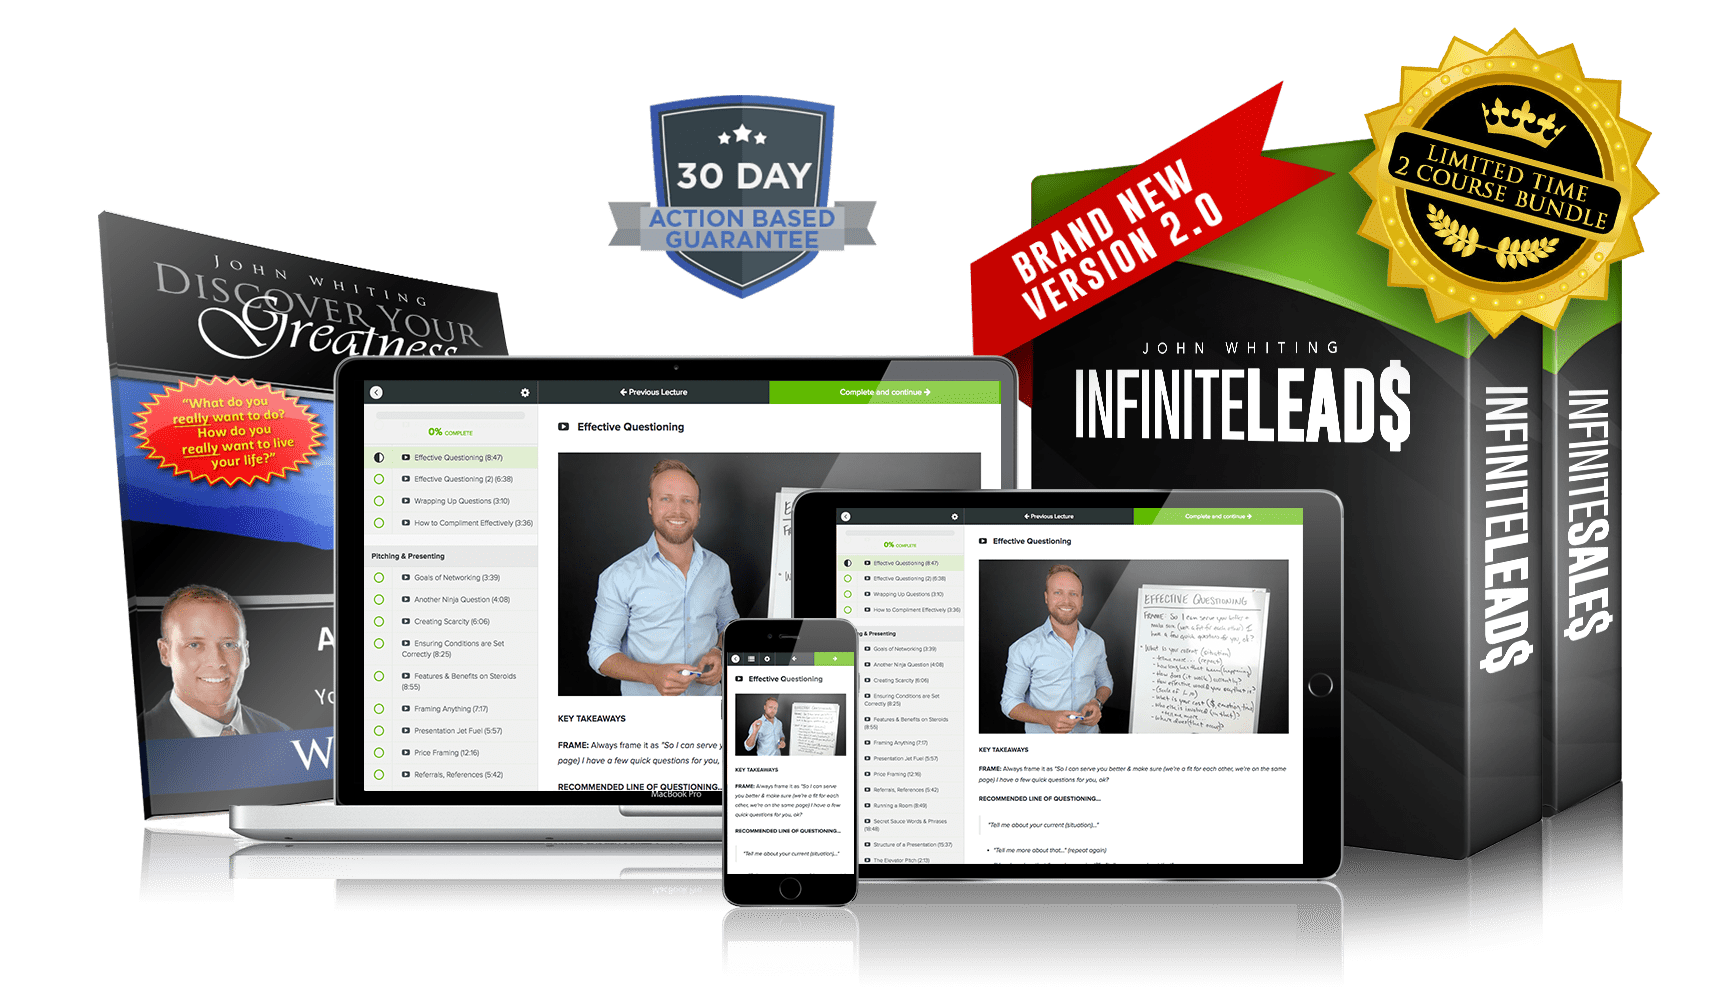 [SUPER HOT SHARE] John Whiting – Infinite Leads 2.0 Download